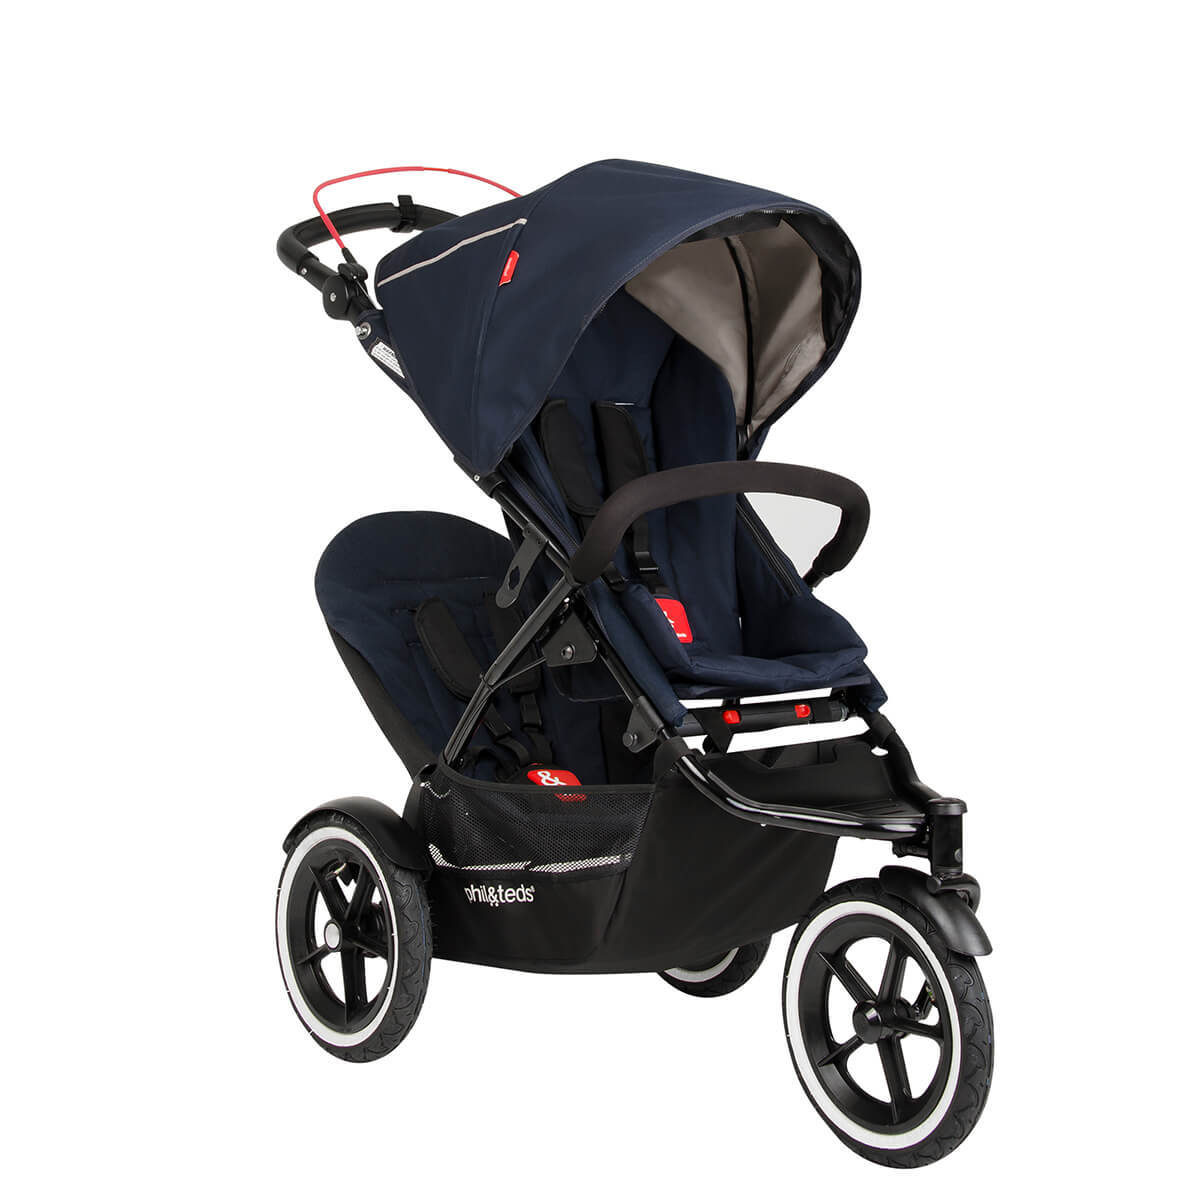 【40%OFF実施中】phil&teds sport buggy Midnight フィルアンドテッズ スポーツ